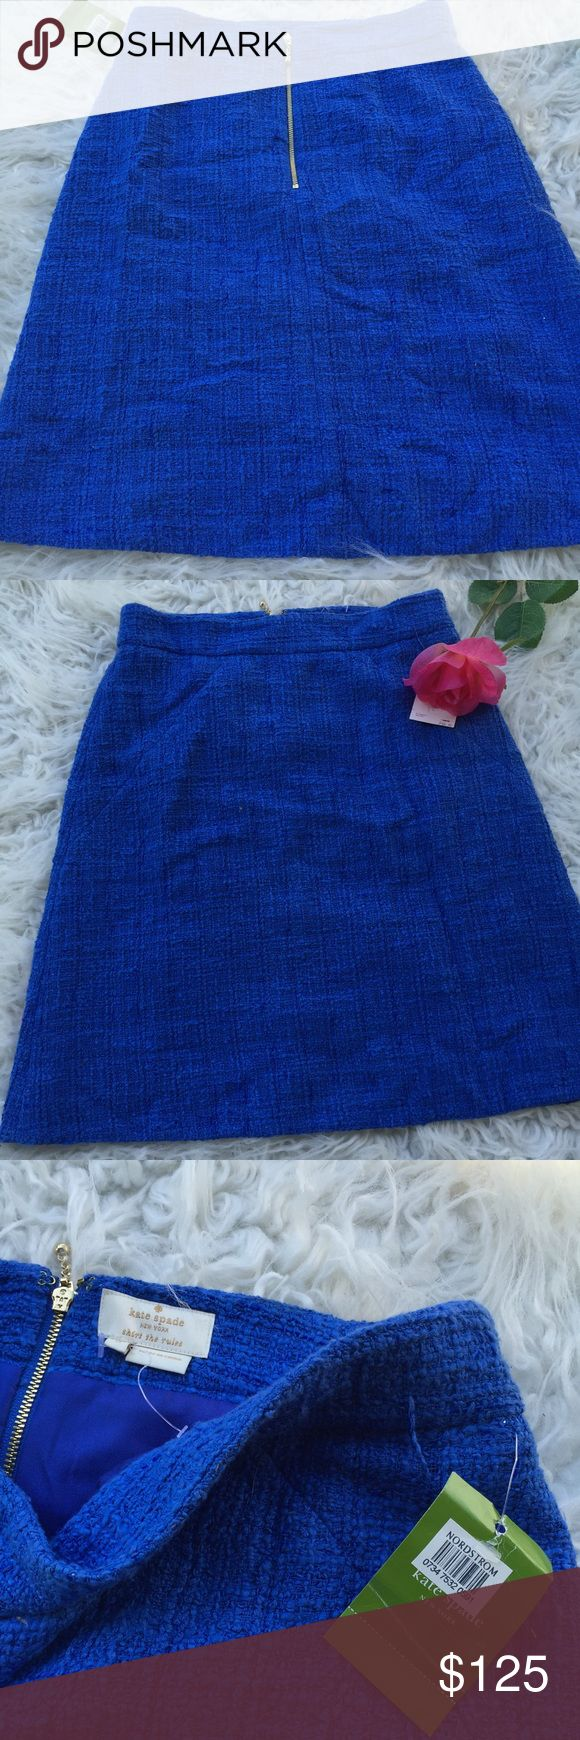 Kate spade Anite skirt pop of color Anite skirt pop of color Roy blue with tags from Nordstrom super for Sumer suggested retail price $328.00 kate spade Skirts Pencil